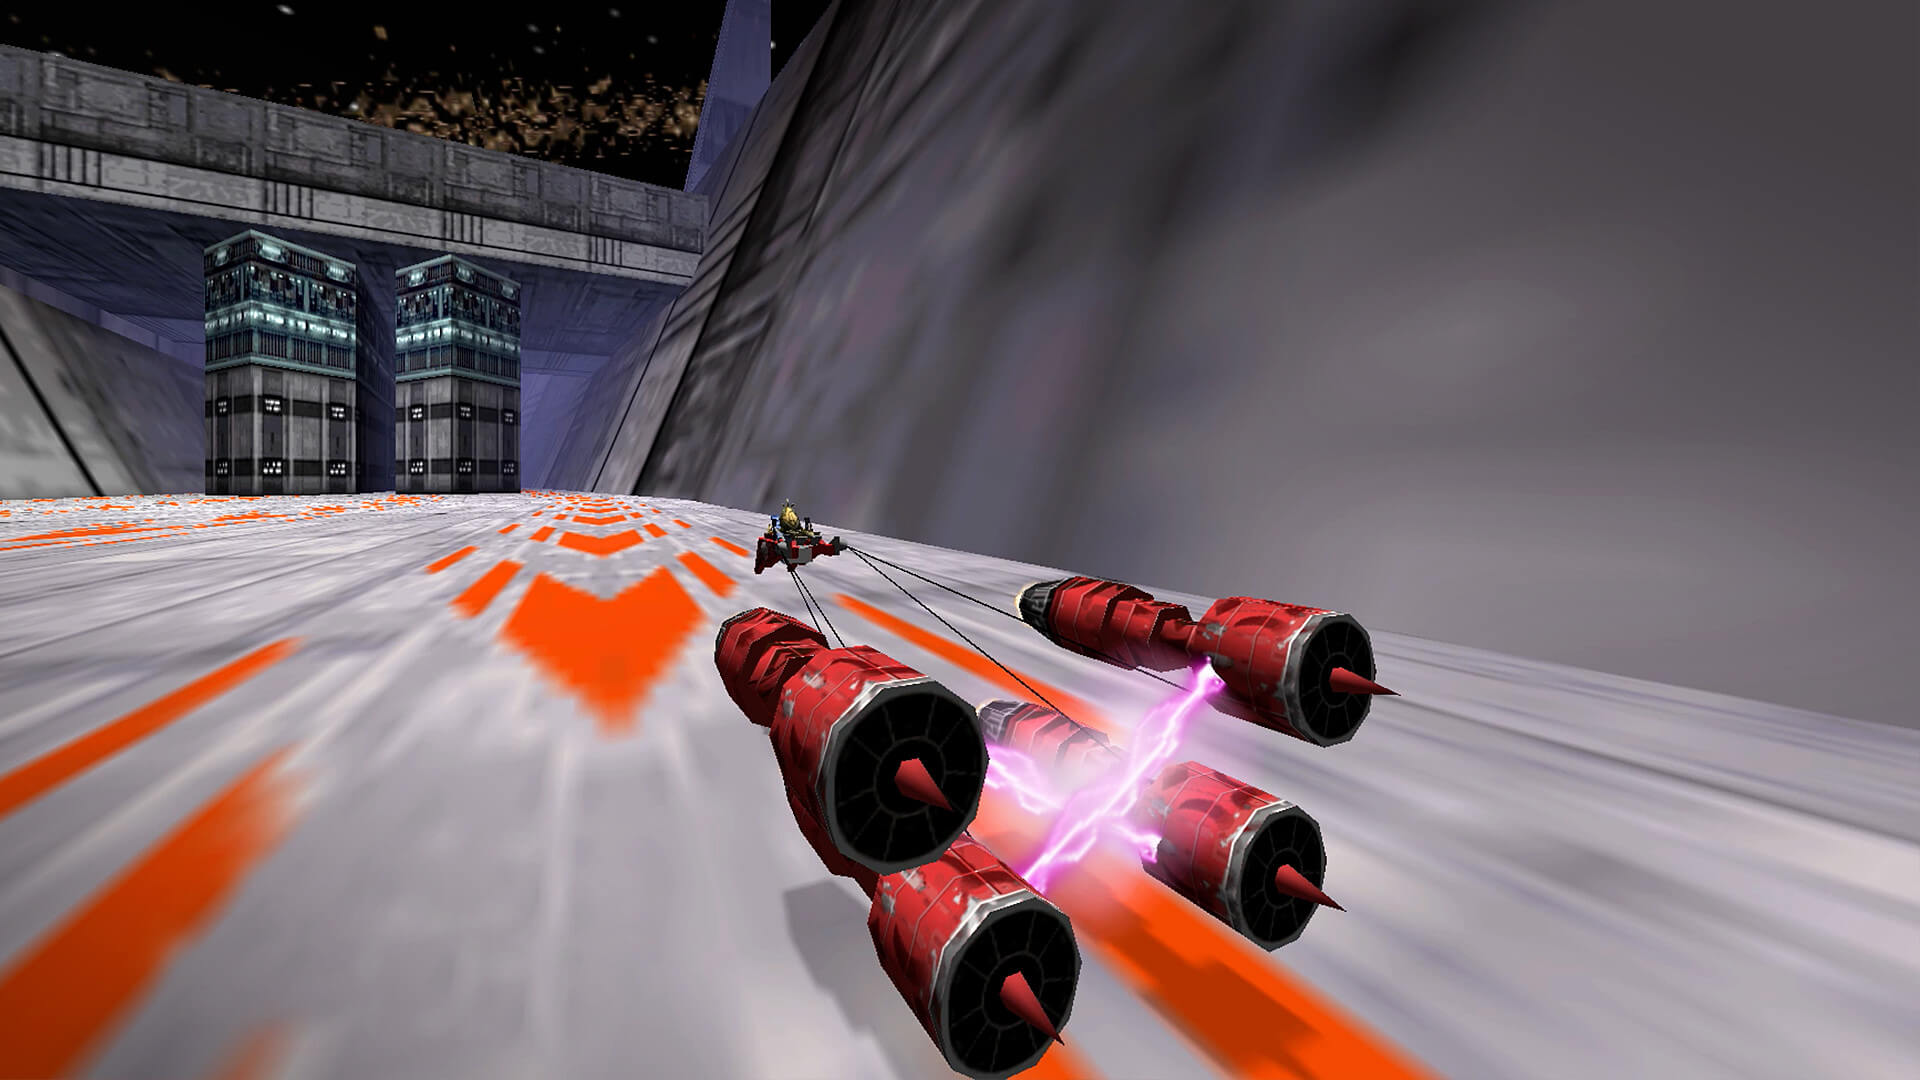 Thegauntlet Racer Screenshot9 En